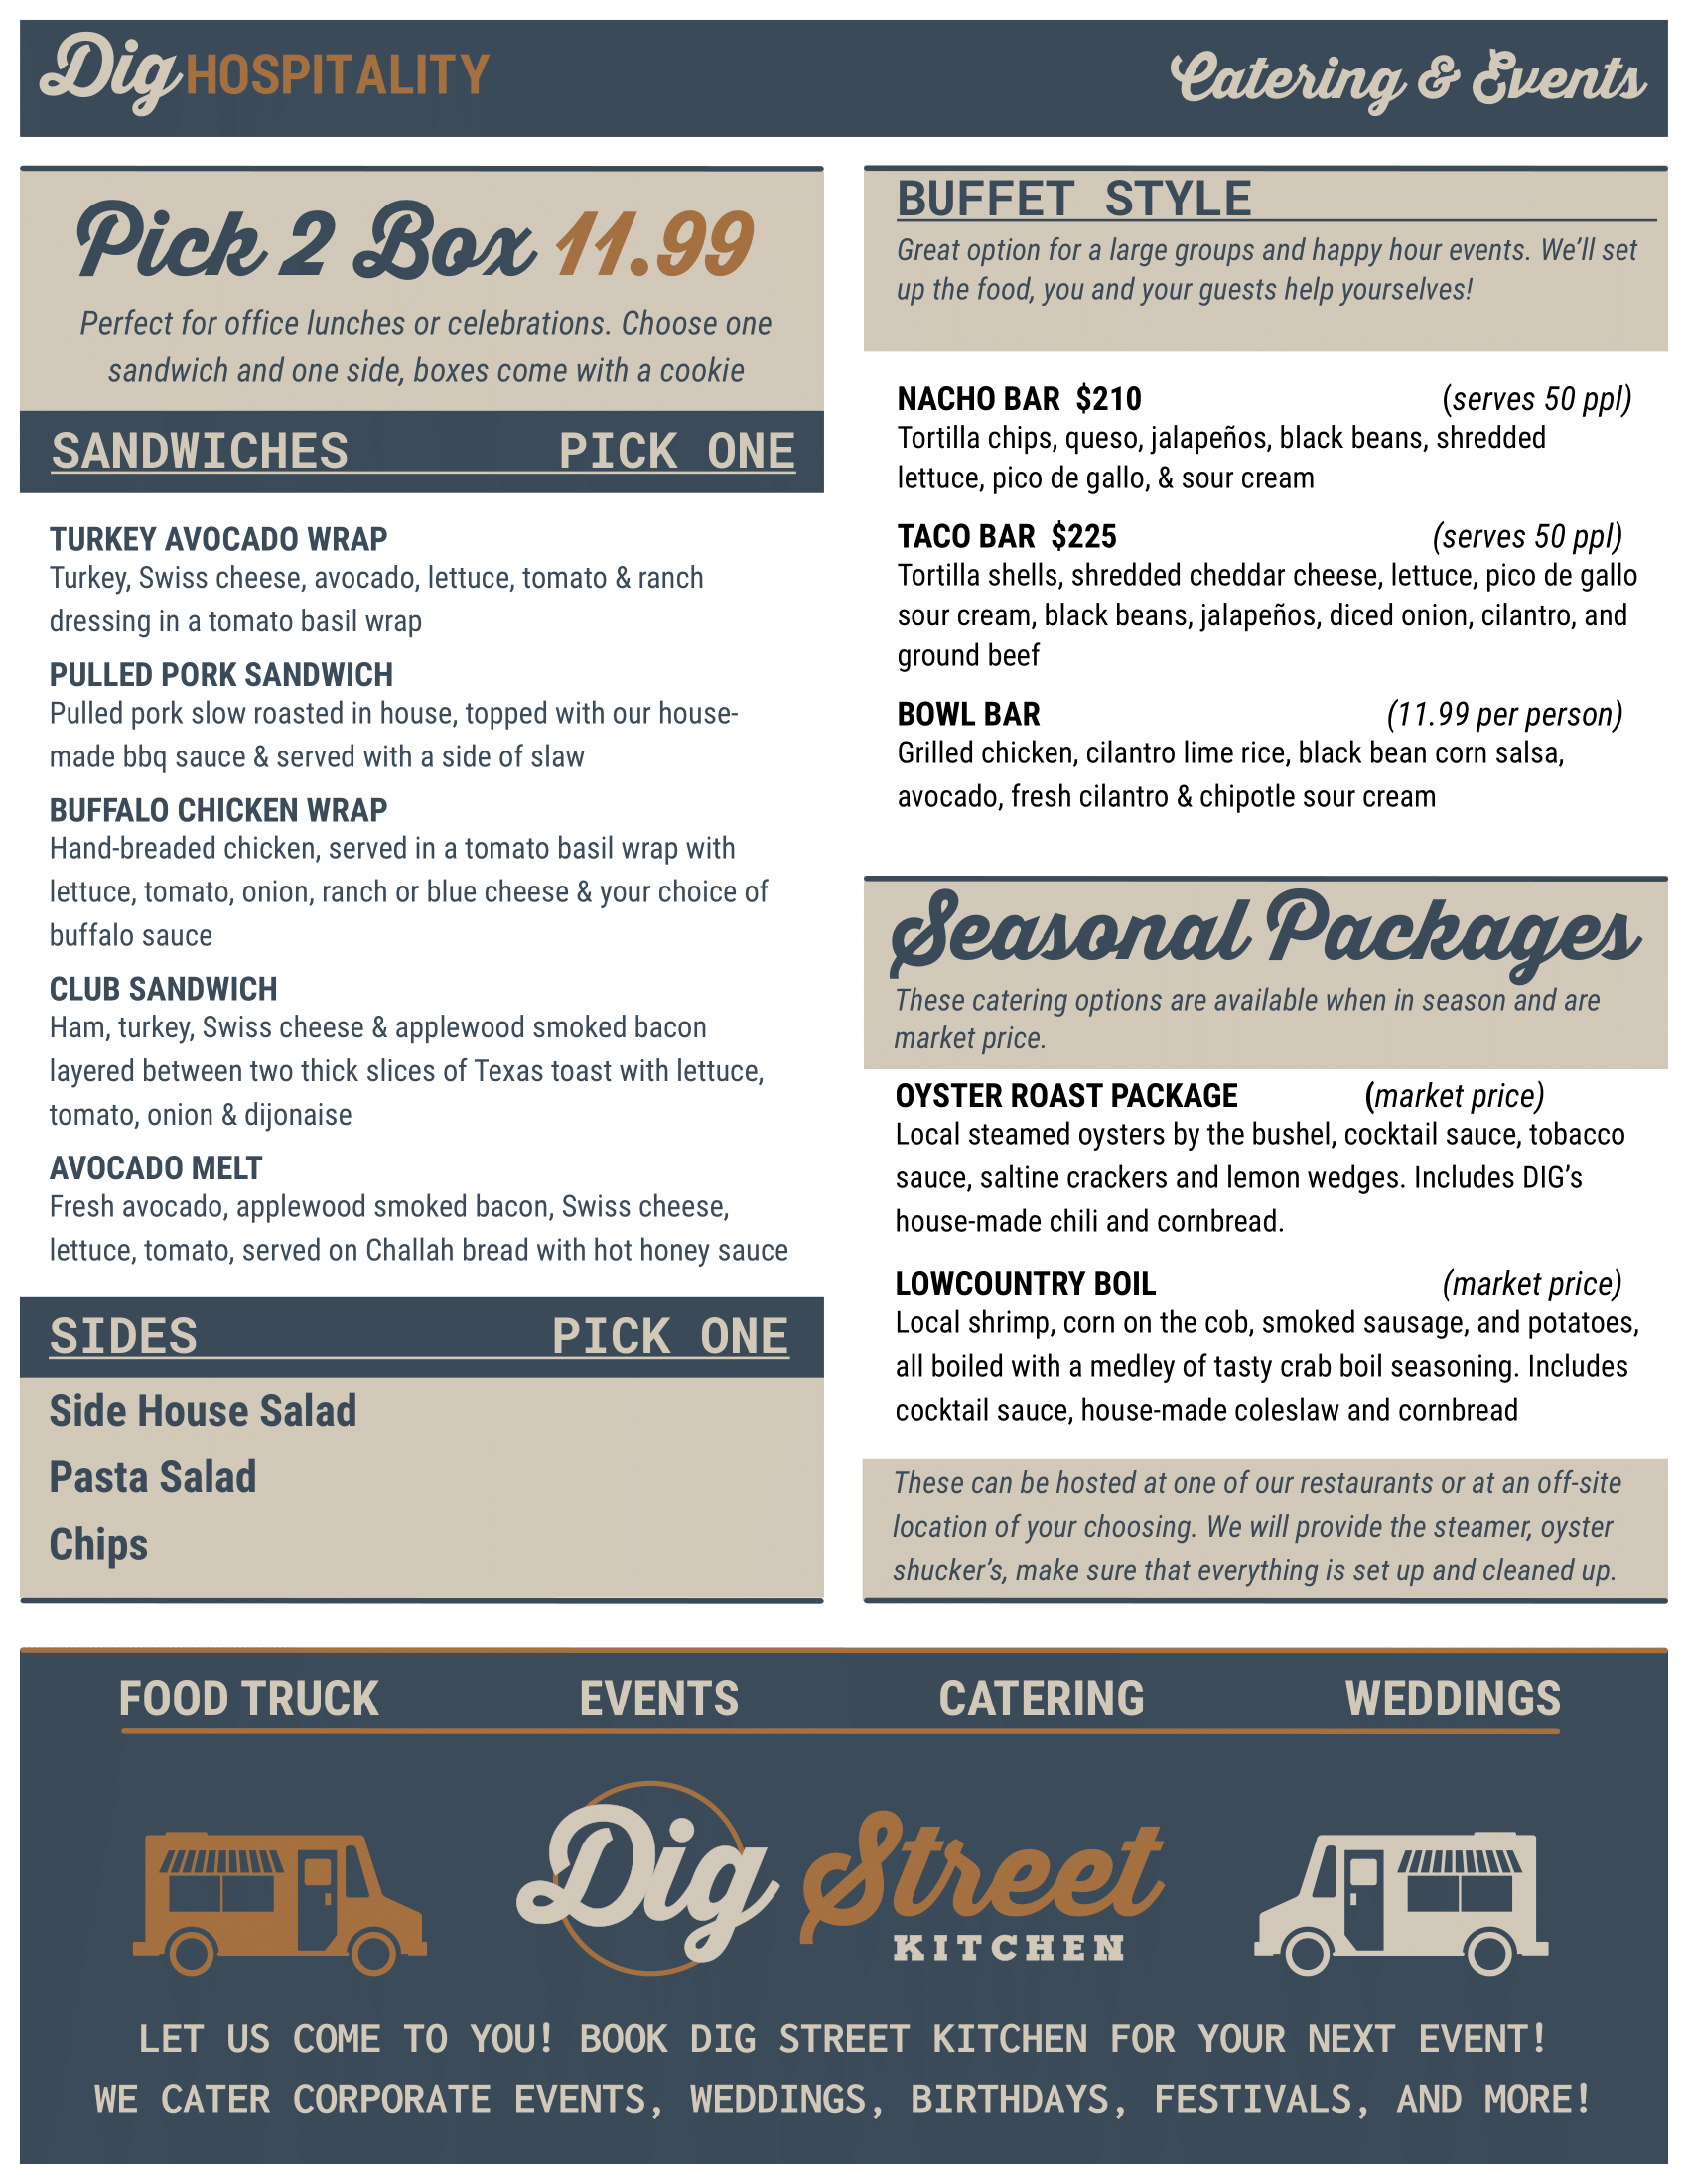 DIG Hospitality - Catering & Events : Page 2